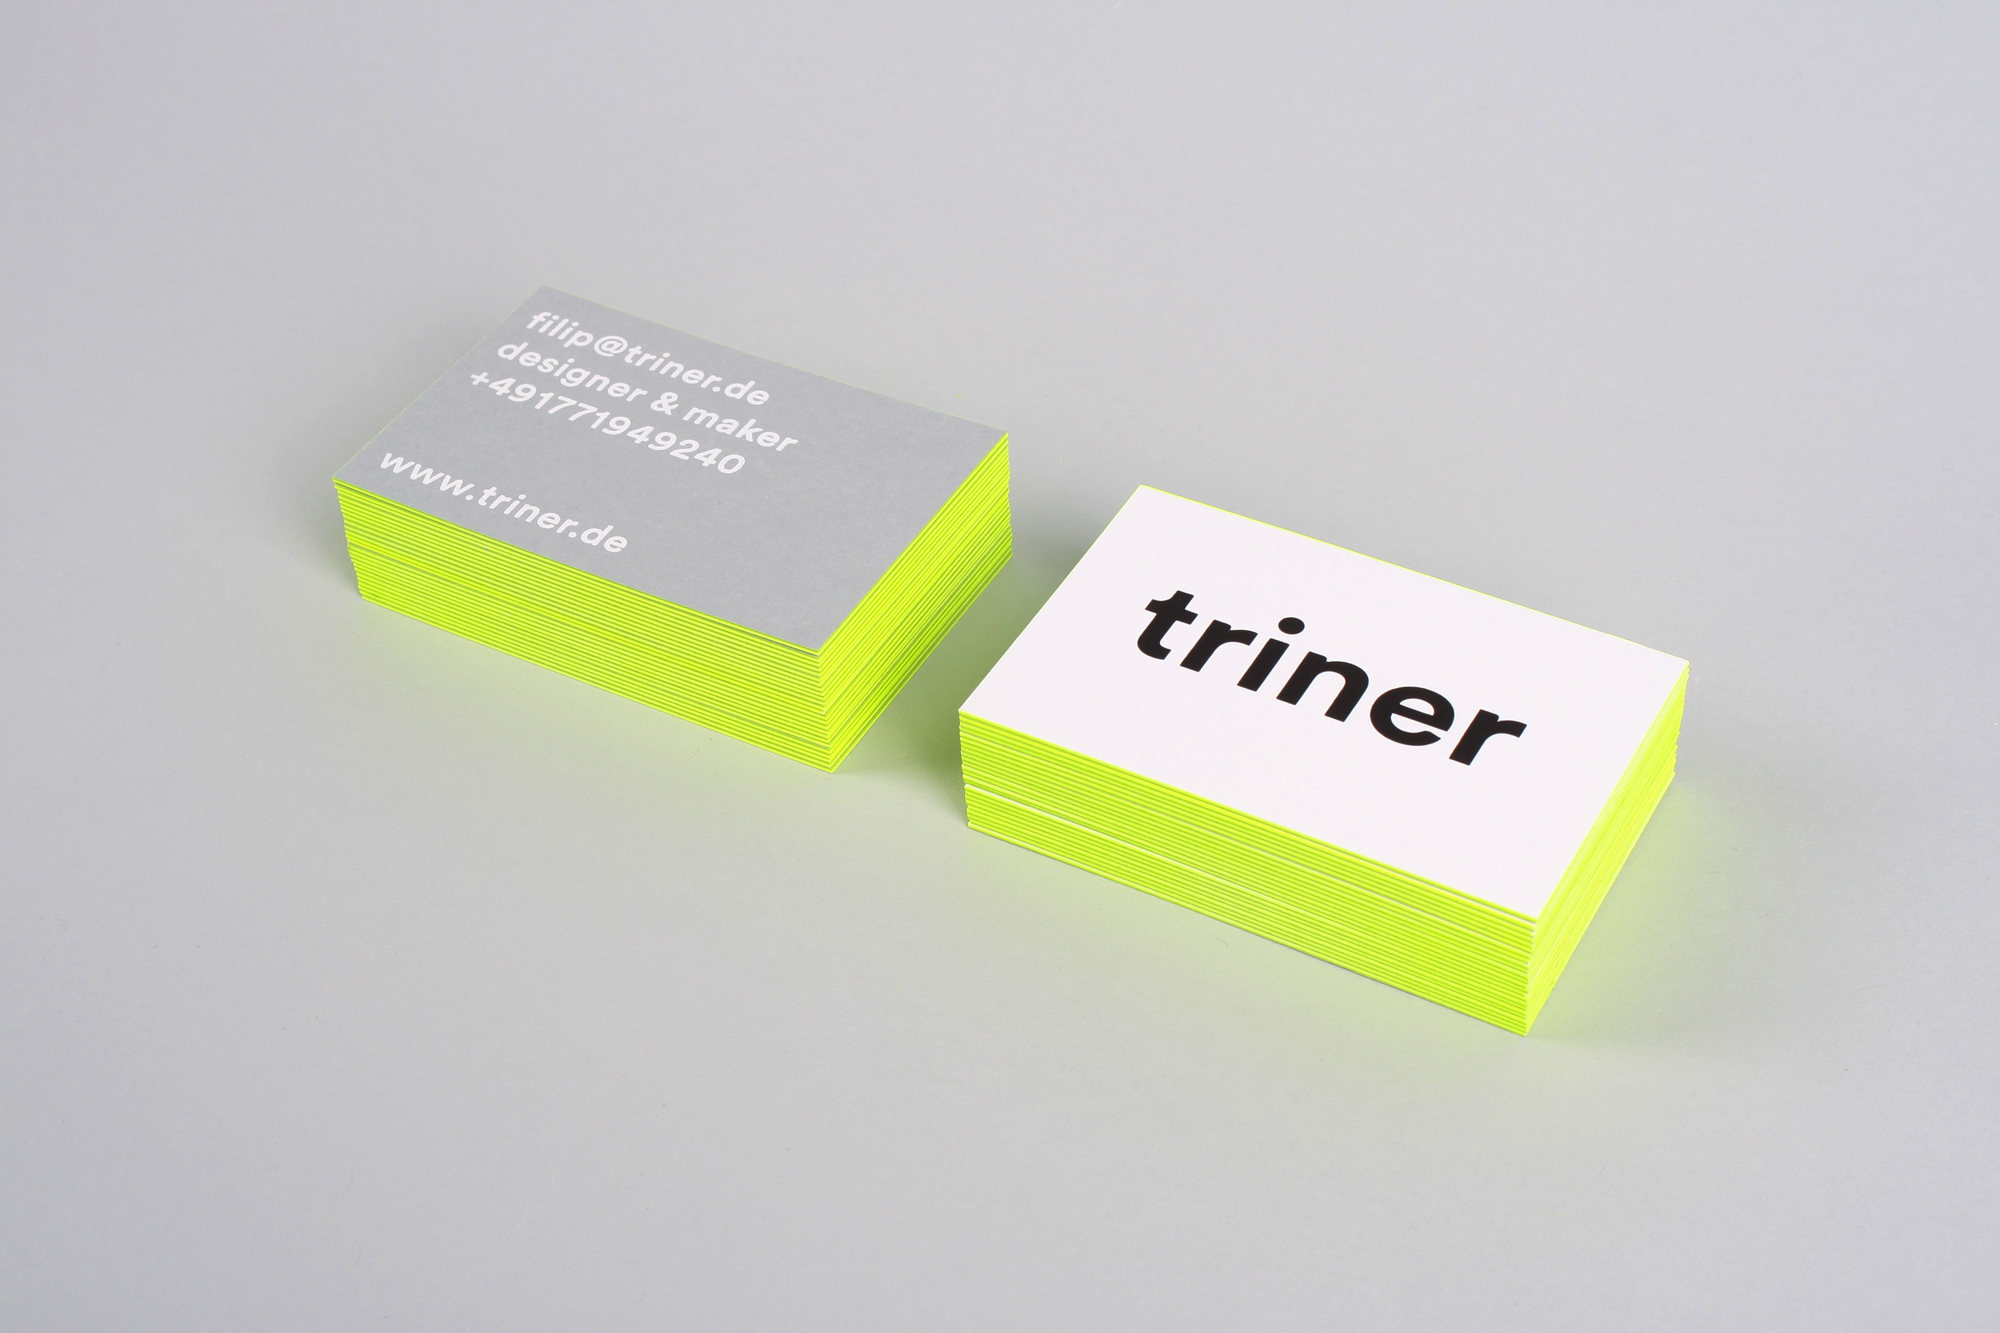 Filip trinertriner business cards filip triner the business cards made big impact and have been featured on several design blogs colourmoves Images